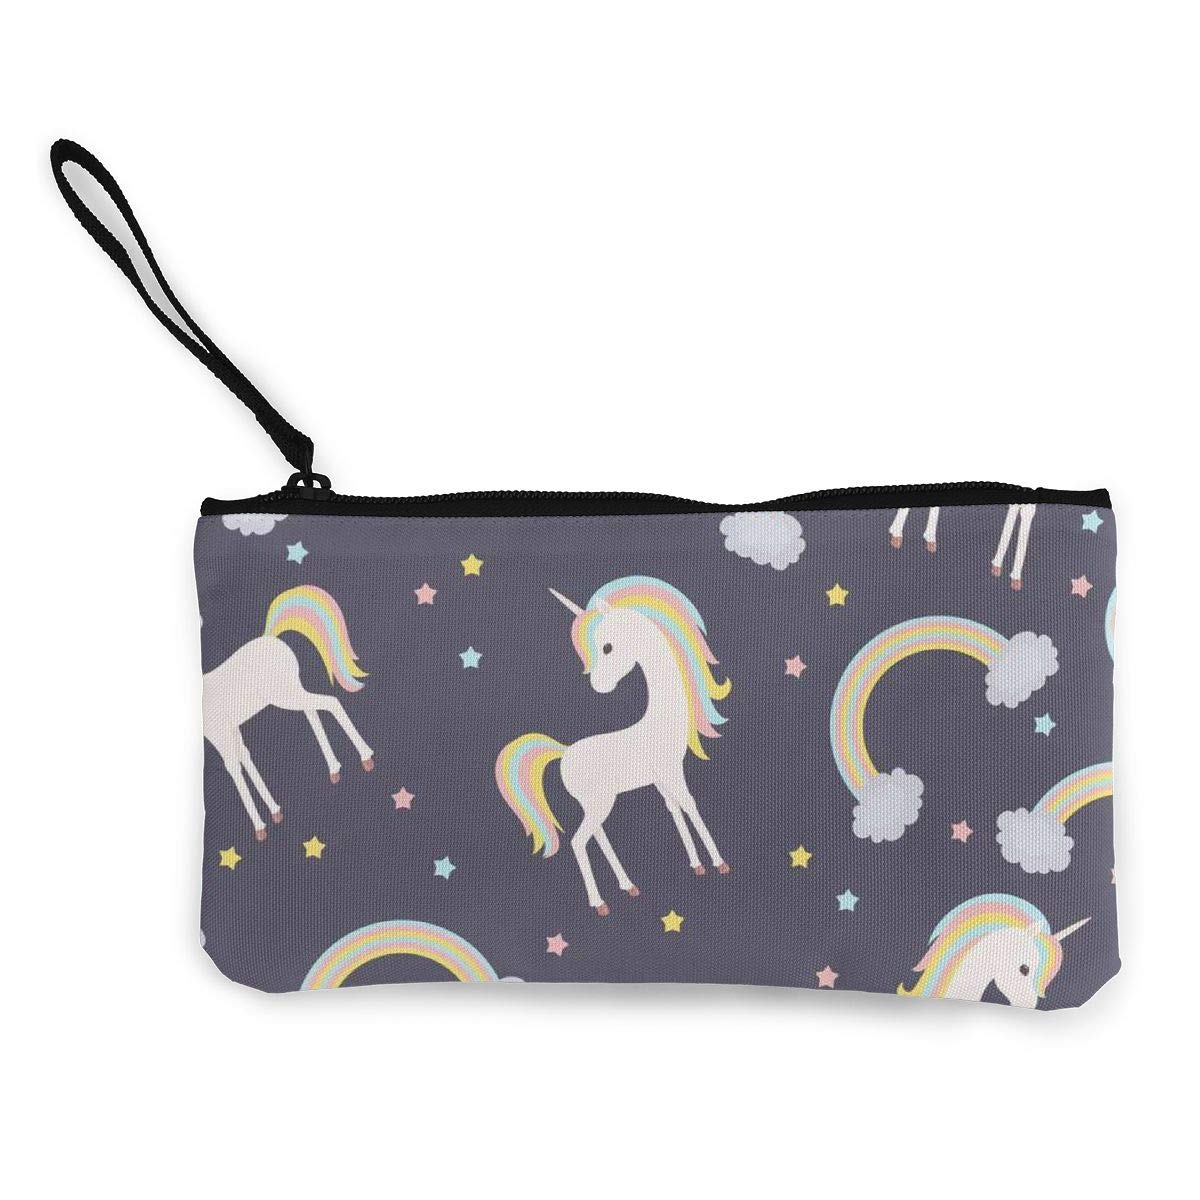 Rainbow Star Unicorn Women's Travel Makeup Bags Canvas Coin Purse Custom Personalized Small Clutch Pouch Phone Organizer Bag